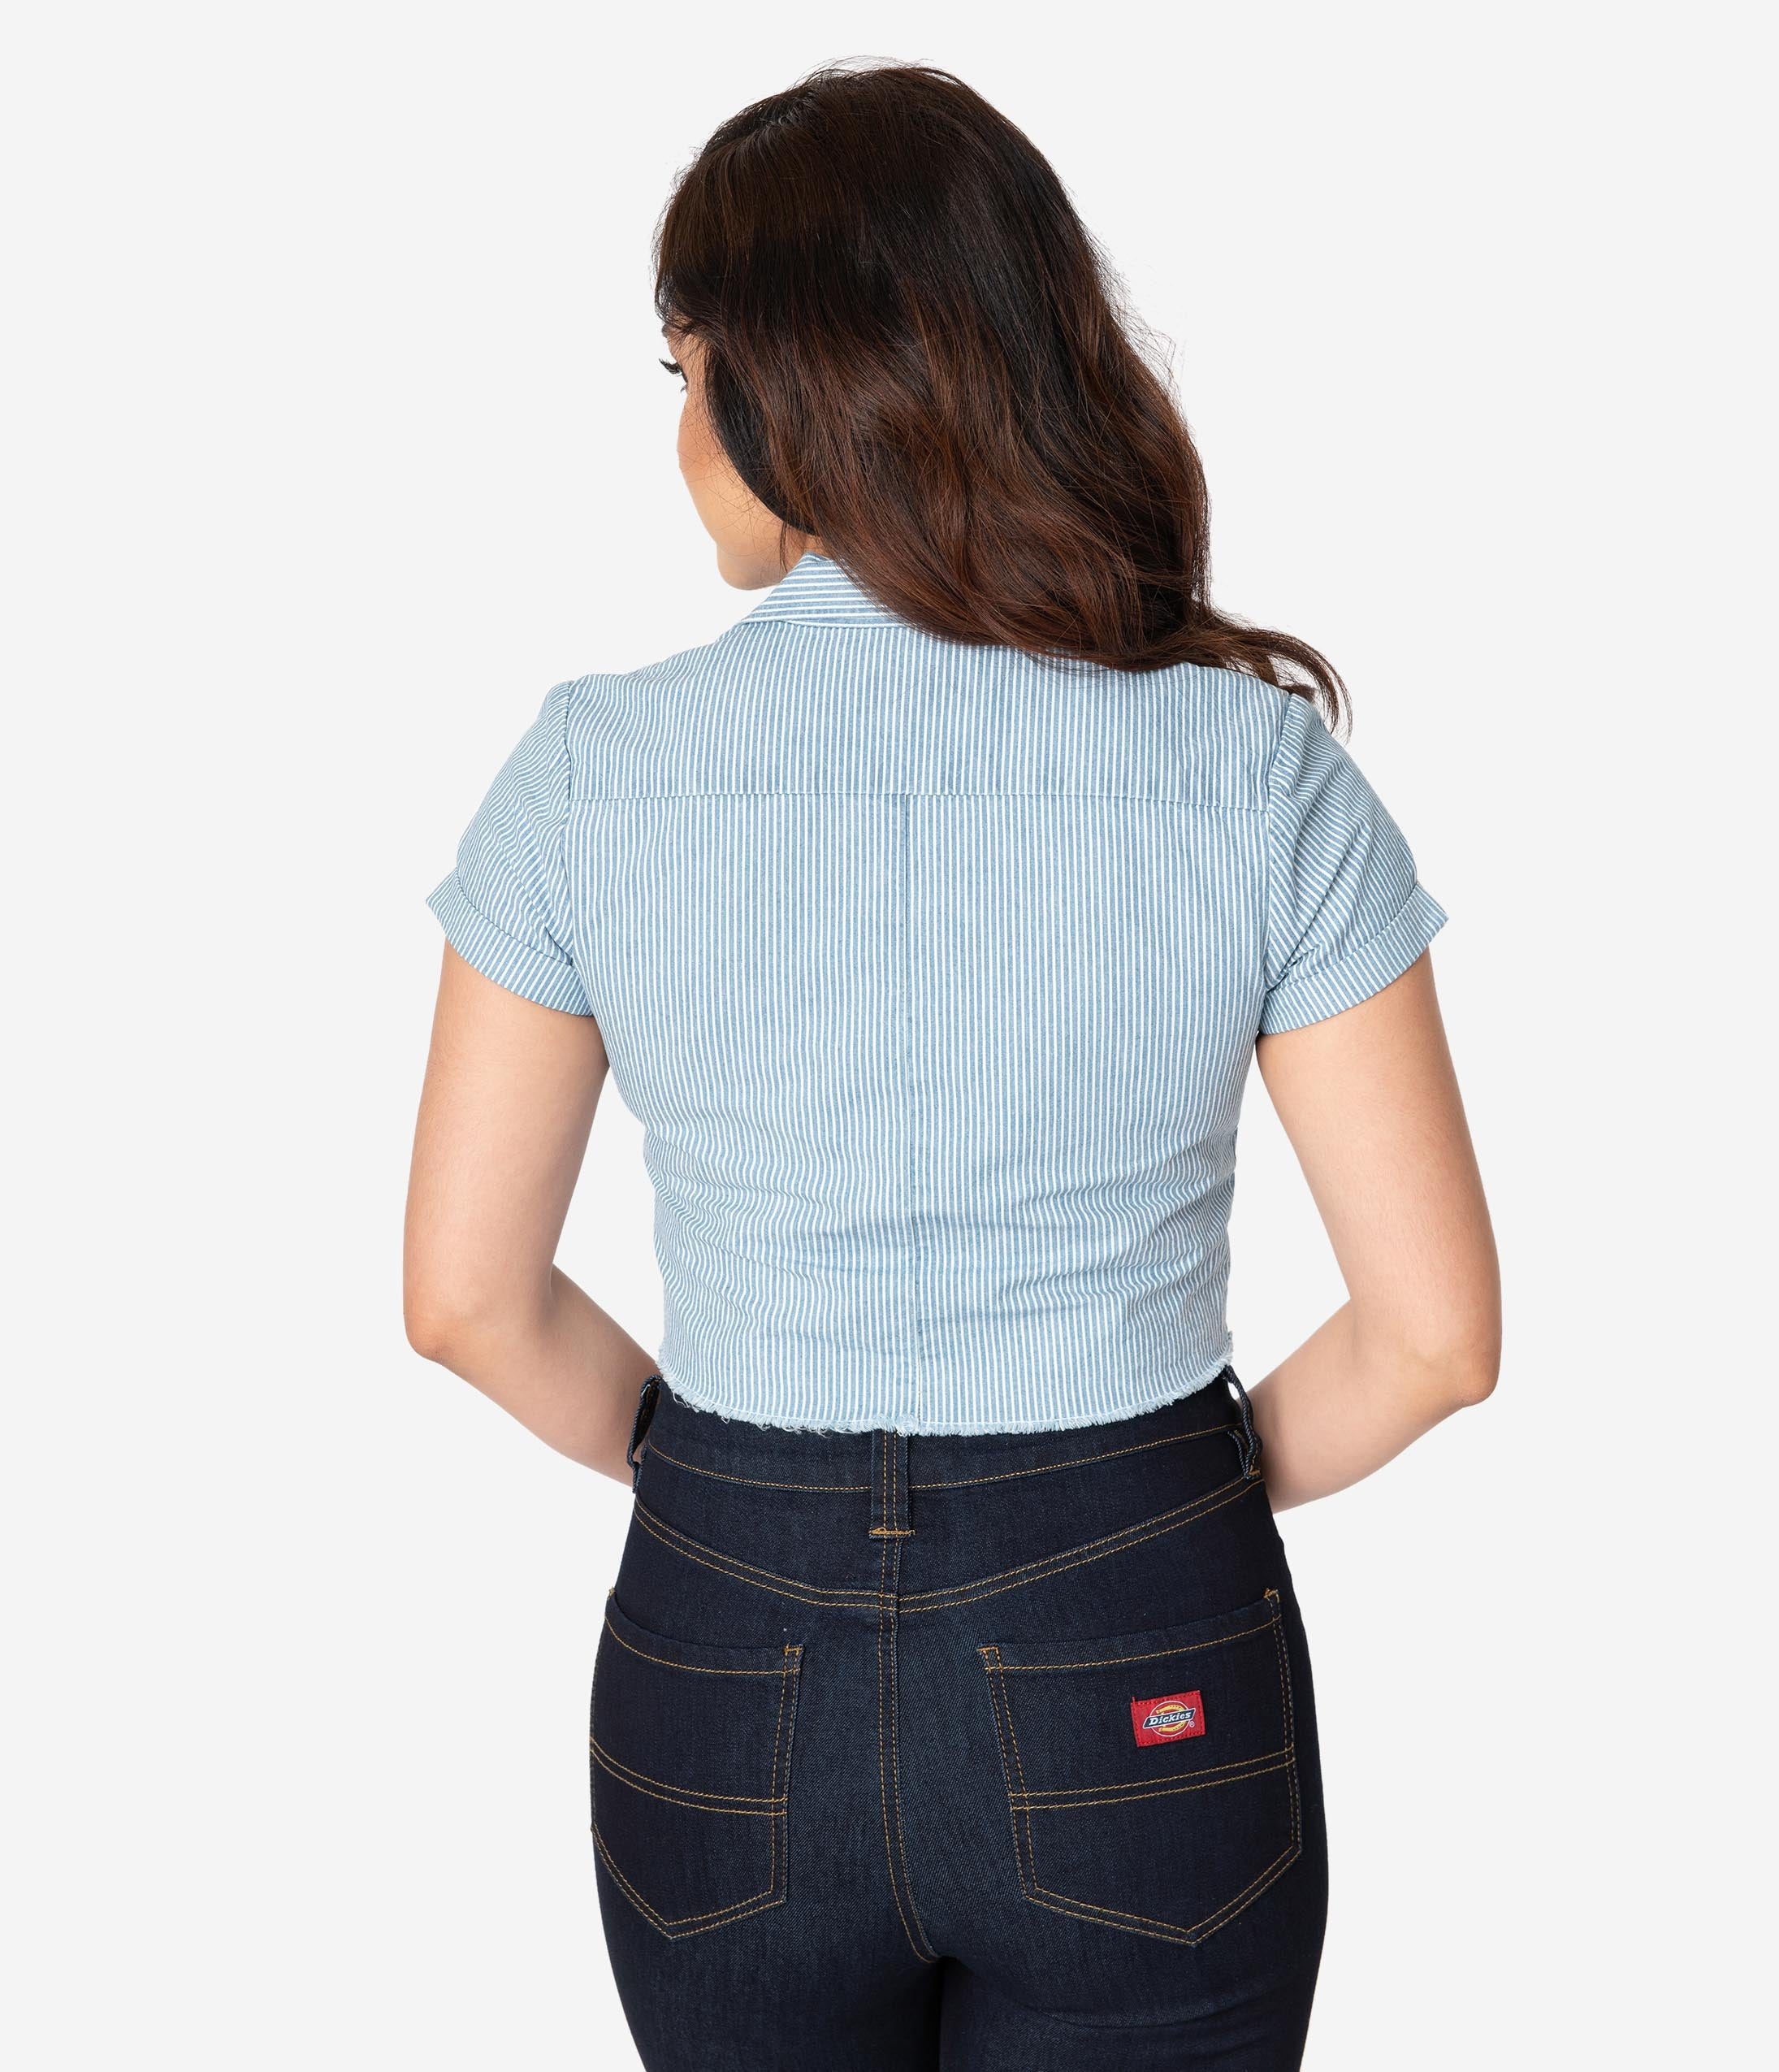 31c5ad7a975 Dickies Red Vintage Medallion Logo Cotton Front Tie Crop Top ...